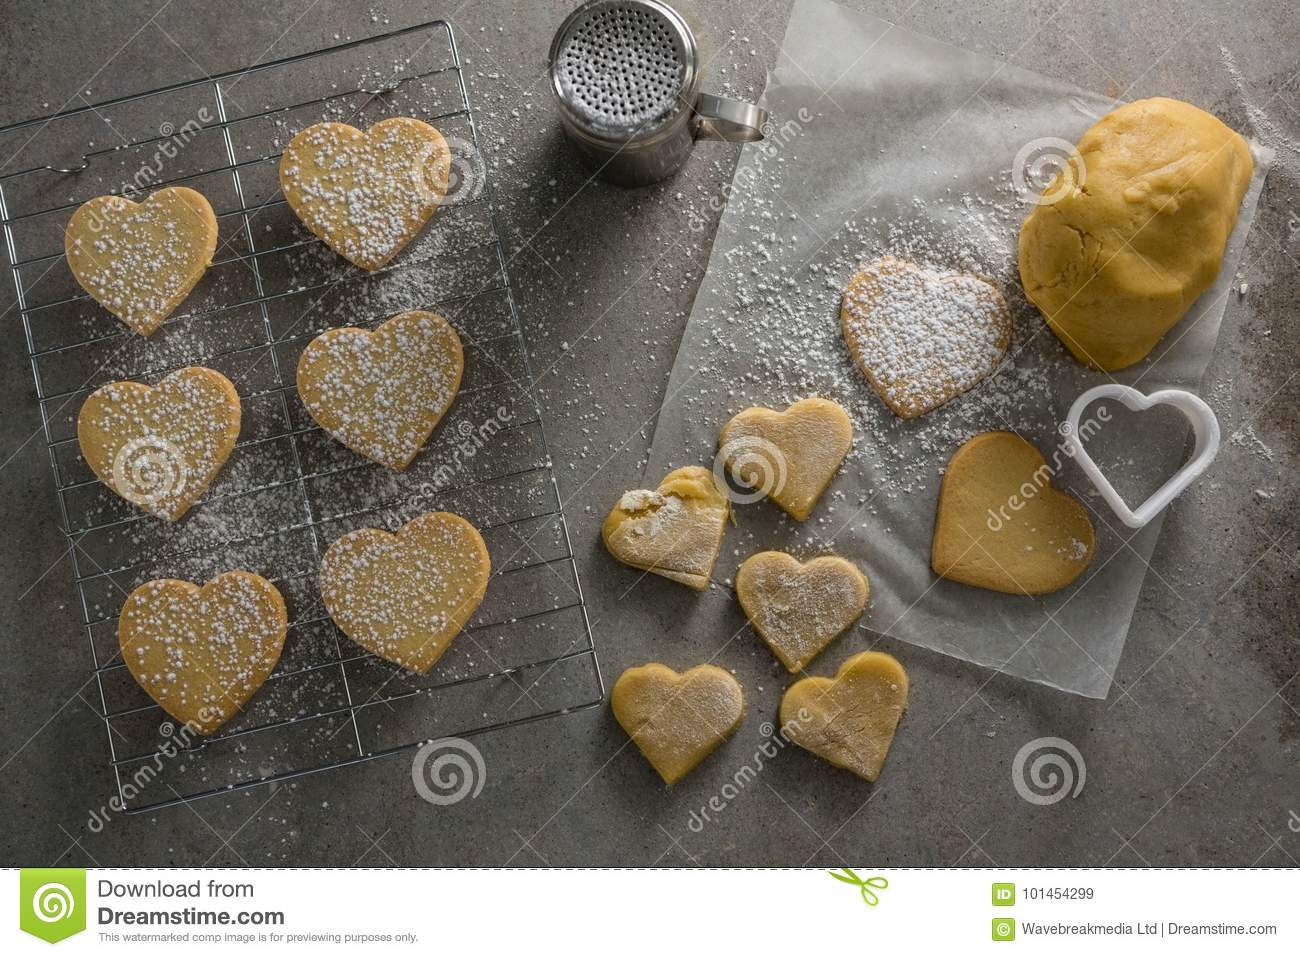 Raw Heart Shape Cookies On Baking Tray With Flour Shaker Strainer